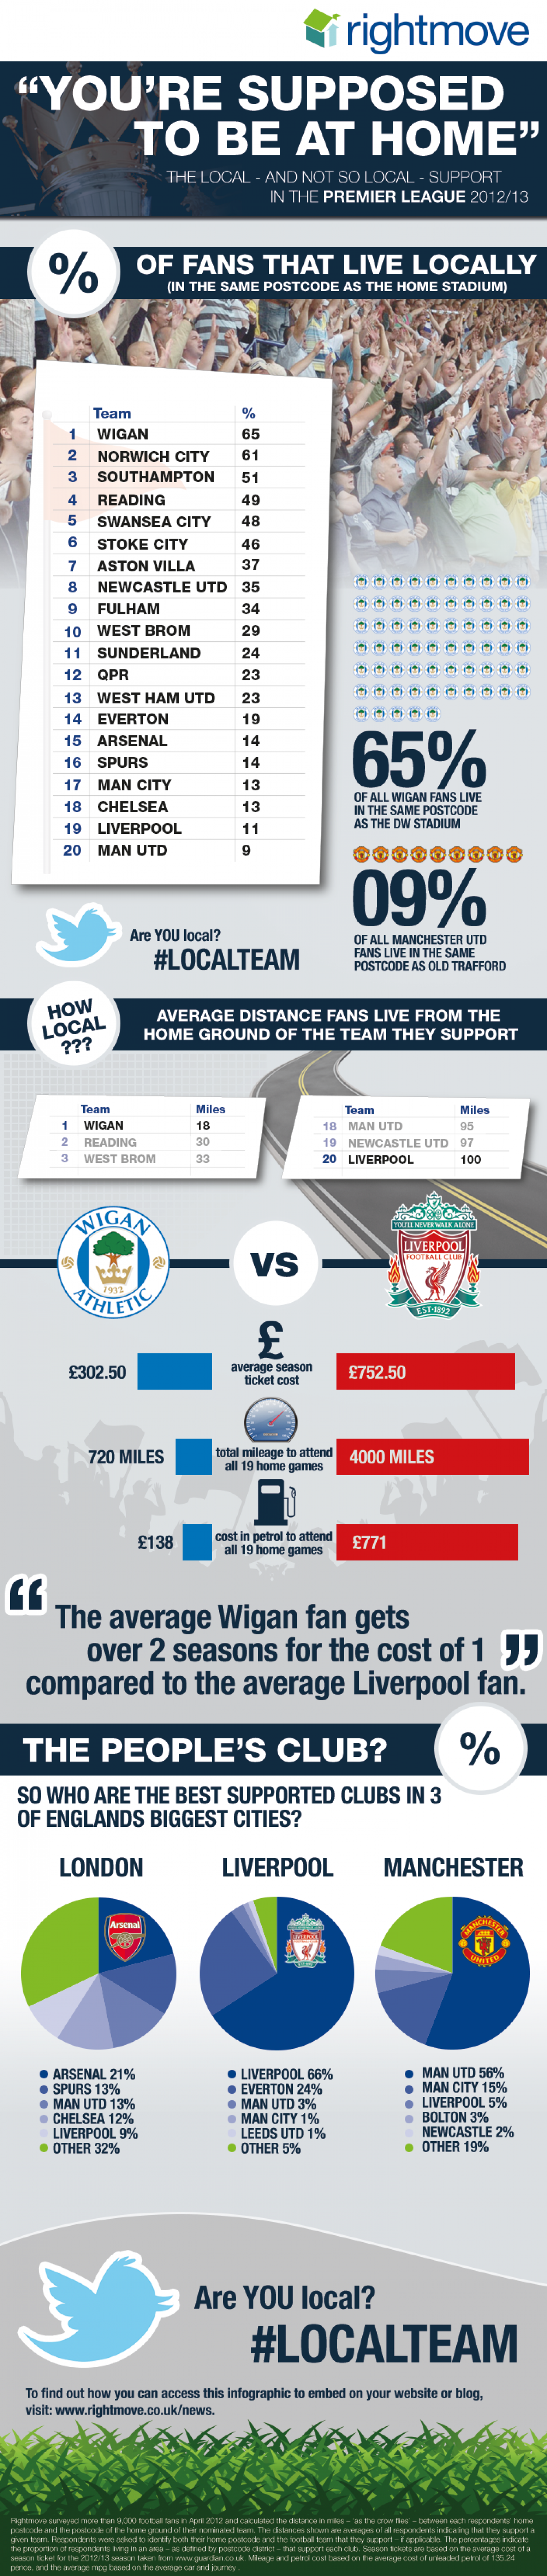 You're supposed to be at home, the local - and not so local - support in the Premier League 2012/13 Infographic